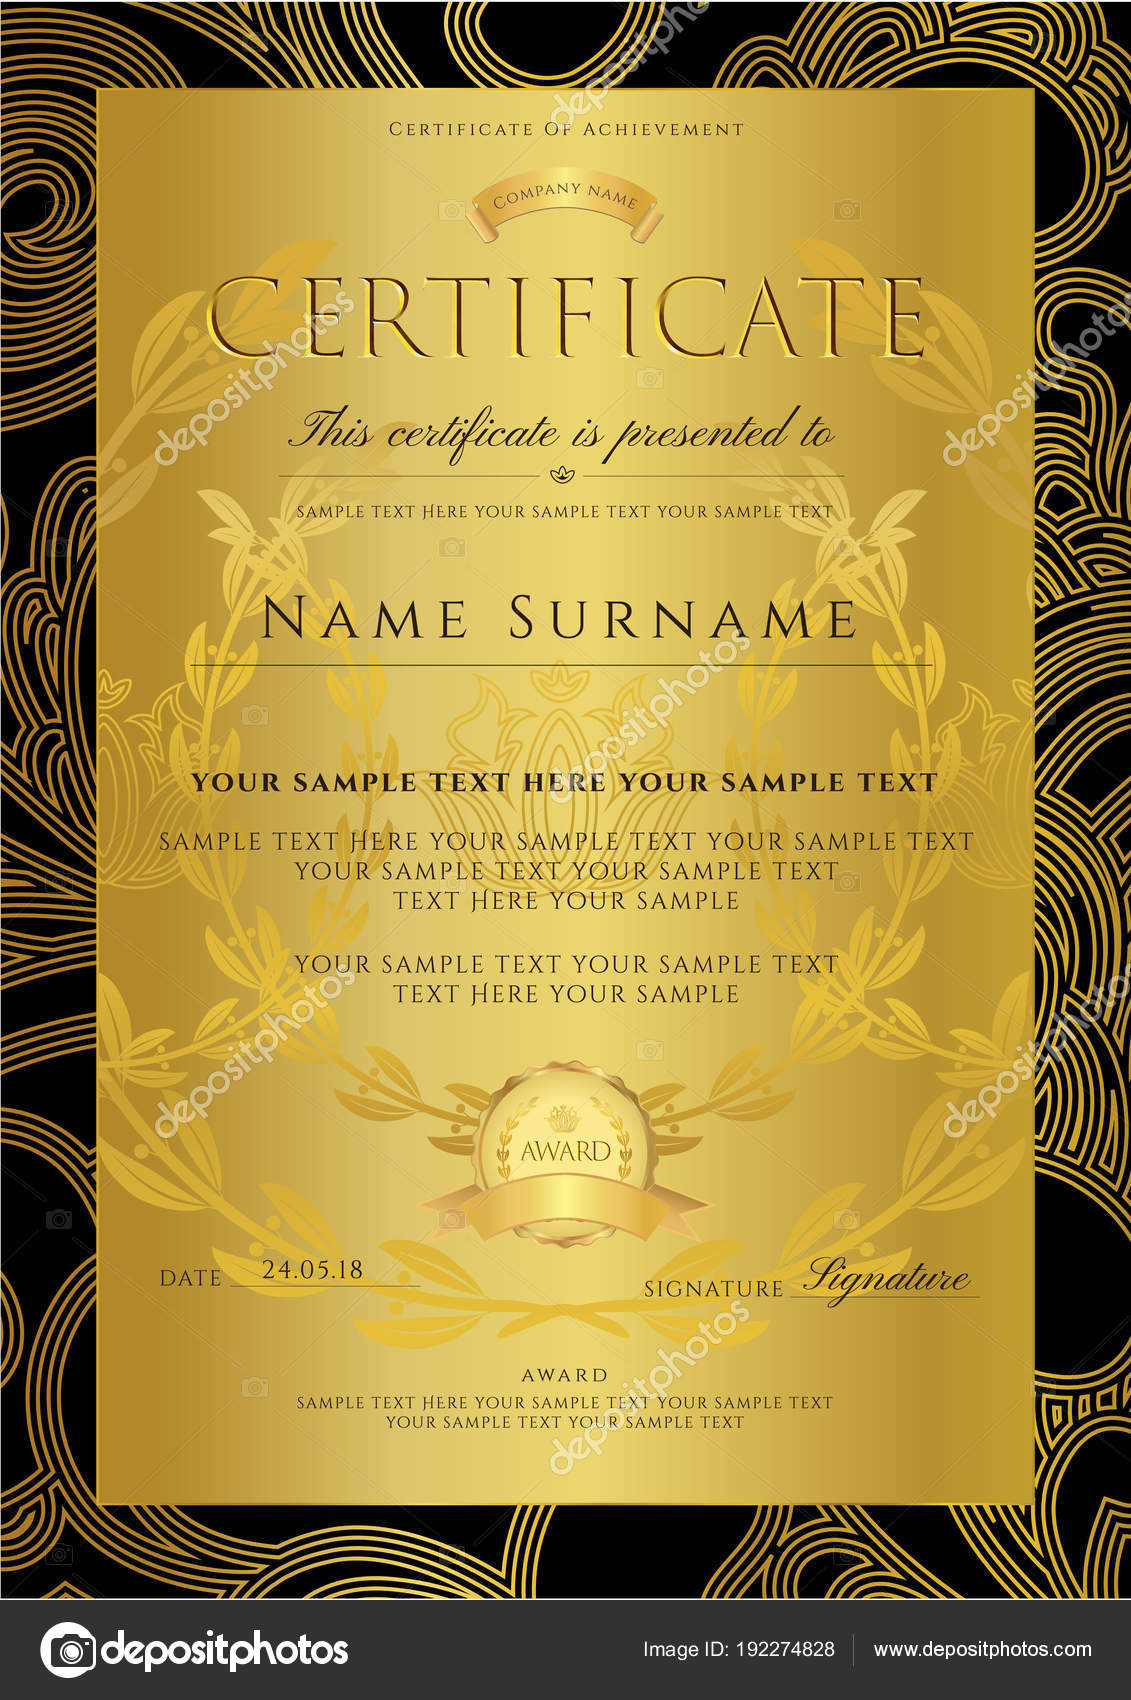 Certificate diploma golden design template background floral certificate diploma golden design template background floral filigree pattern scroll stock vector stopboris Image collections